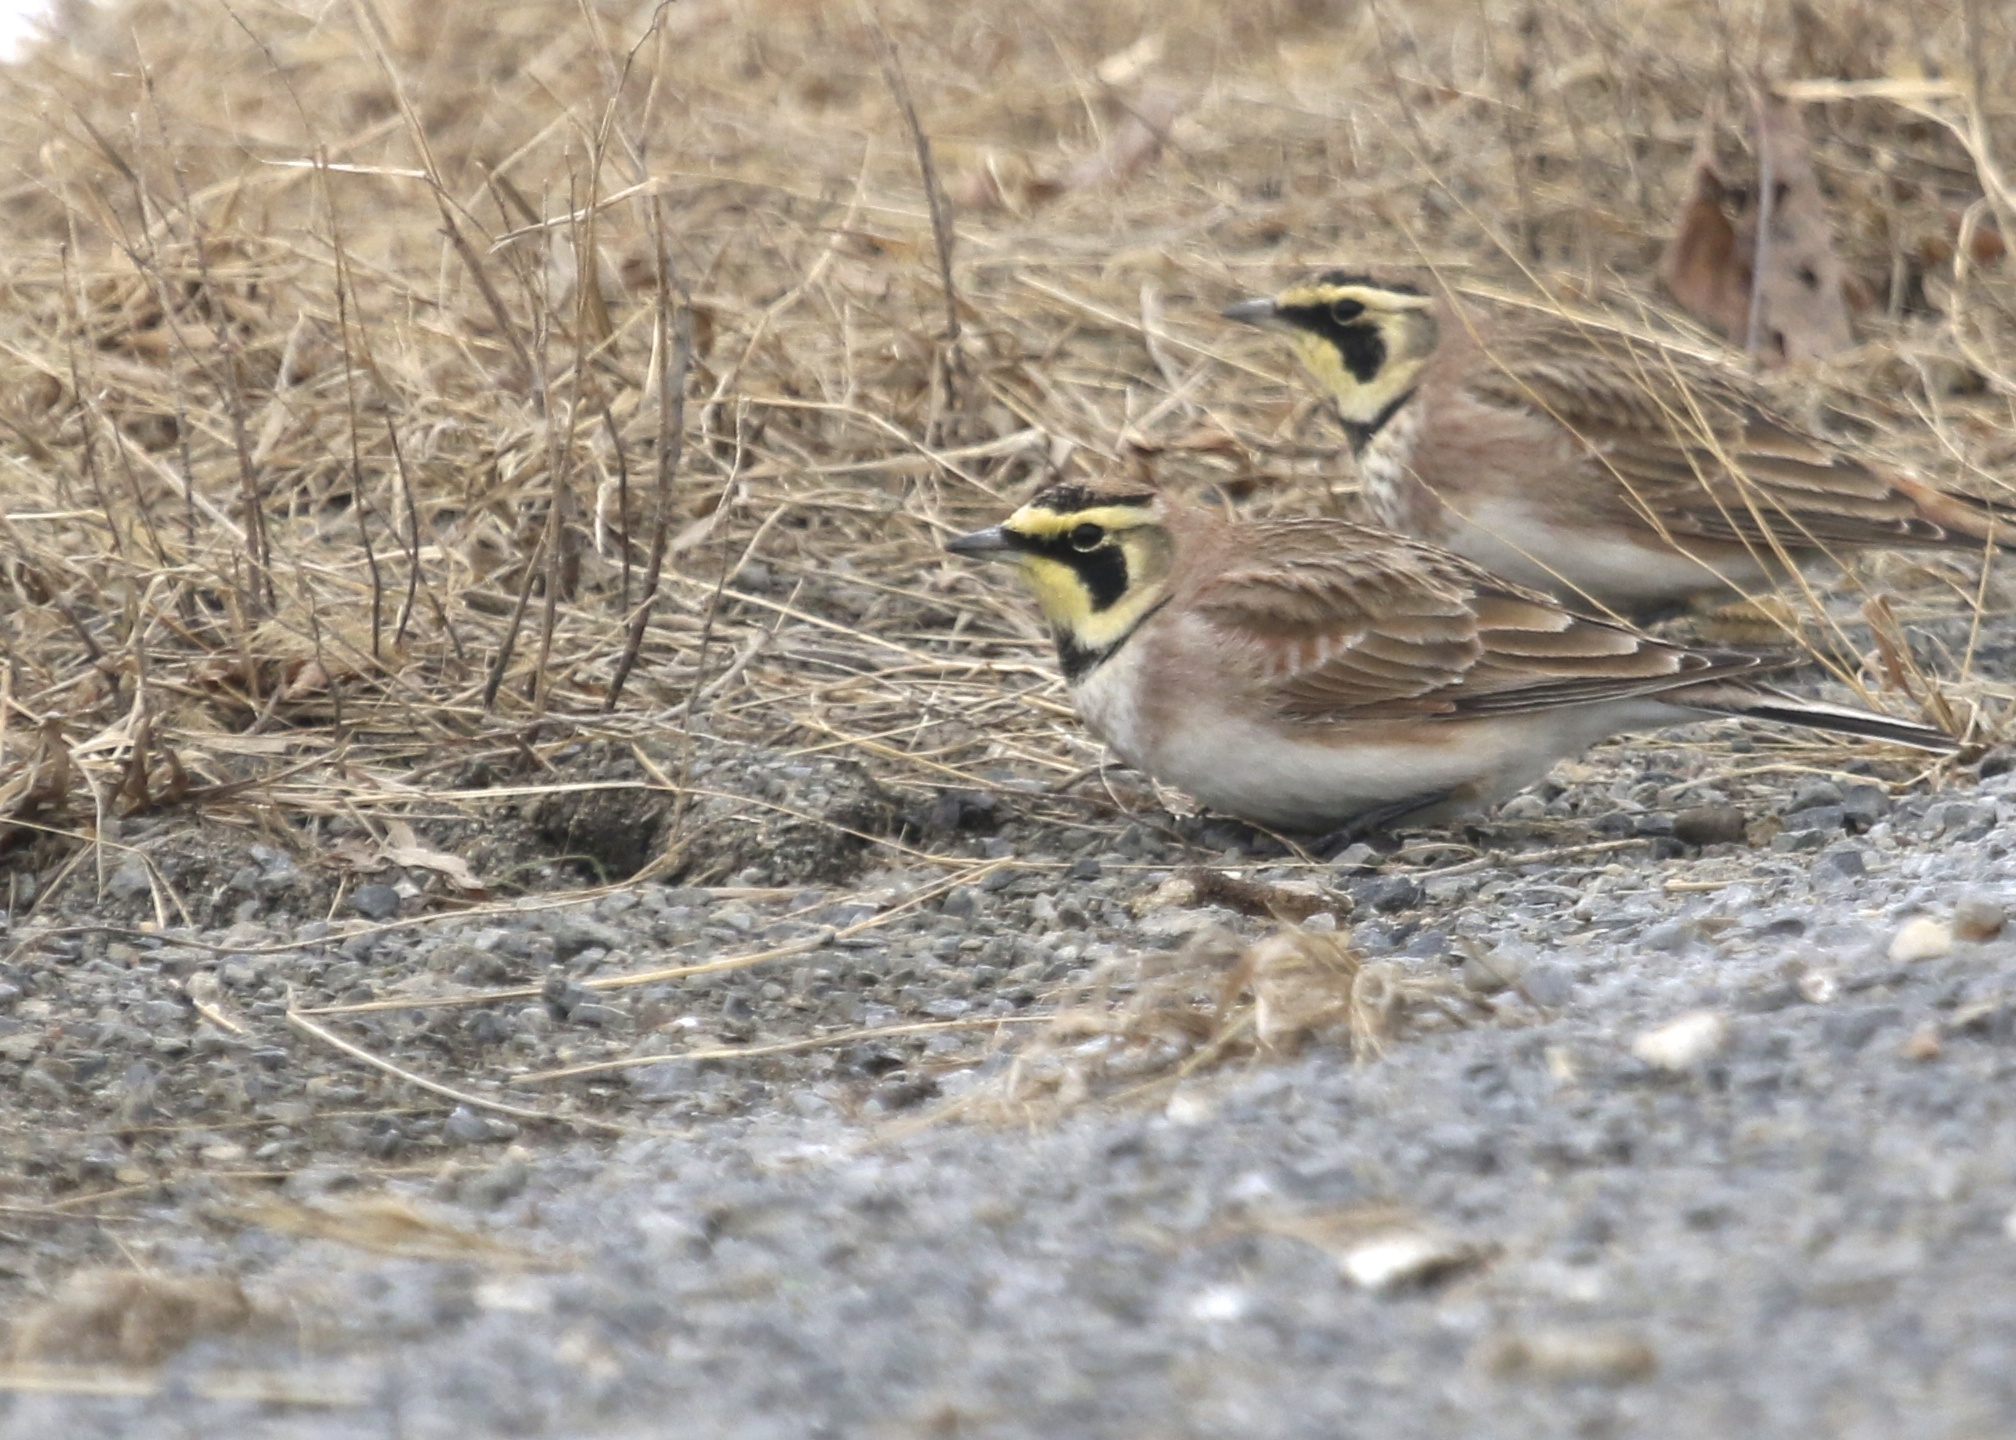 Horned Larks are still present in numbers in Orange County, I came across several good sized flocks today. This shot was from Onion Avenue, 3/2/14.